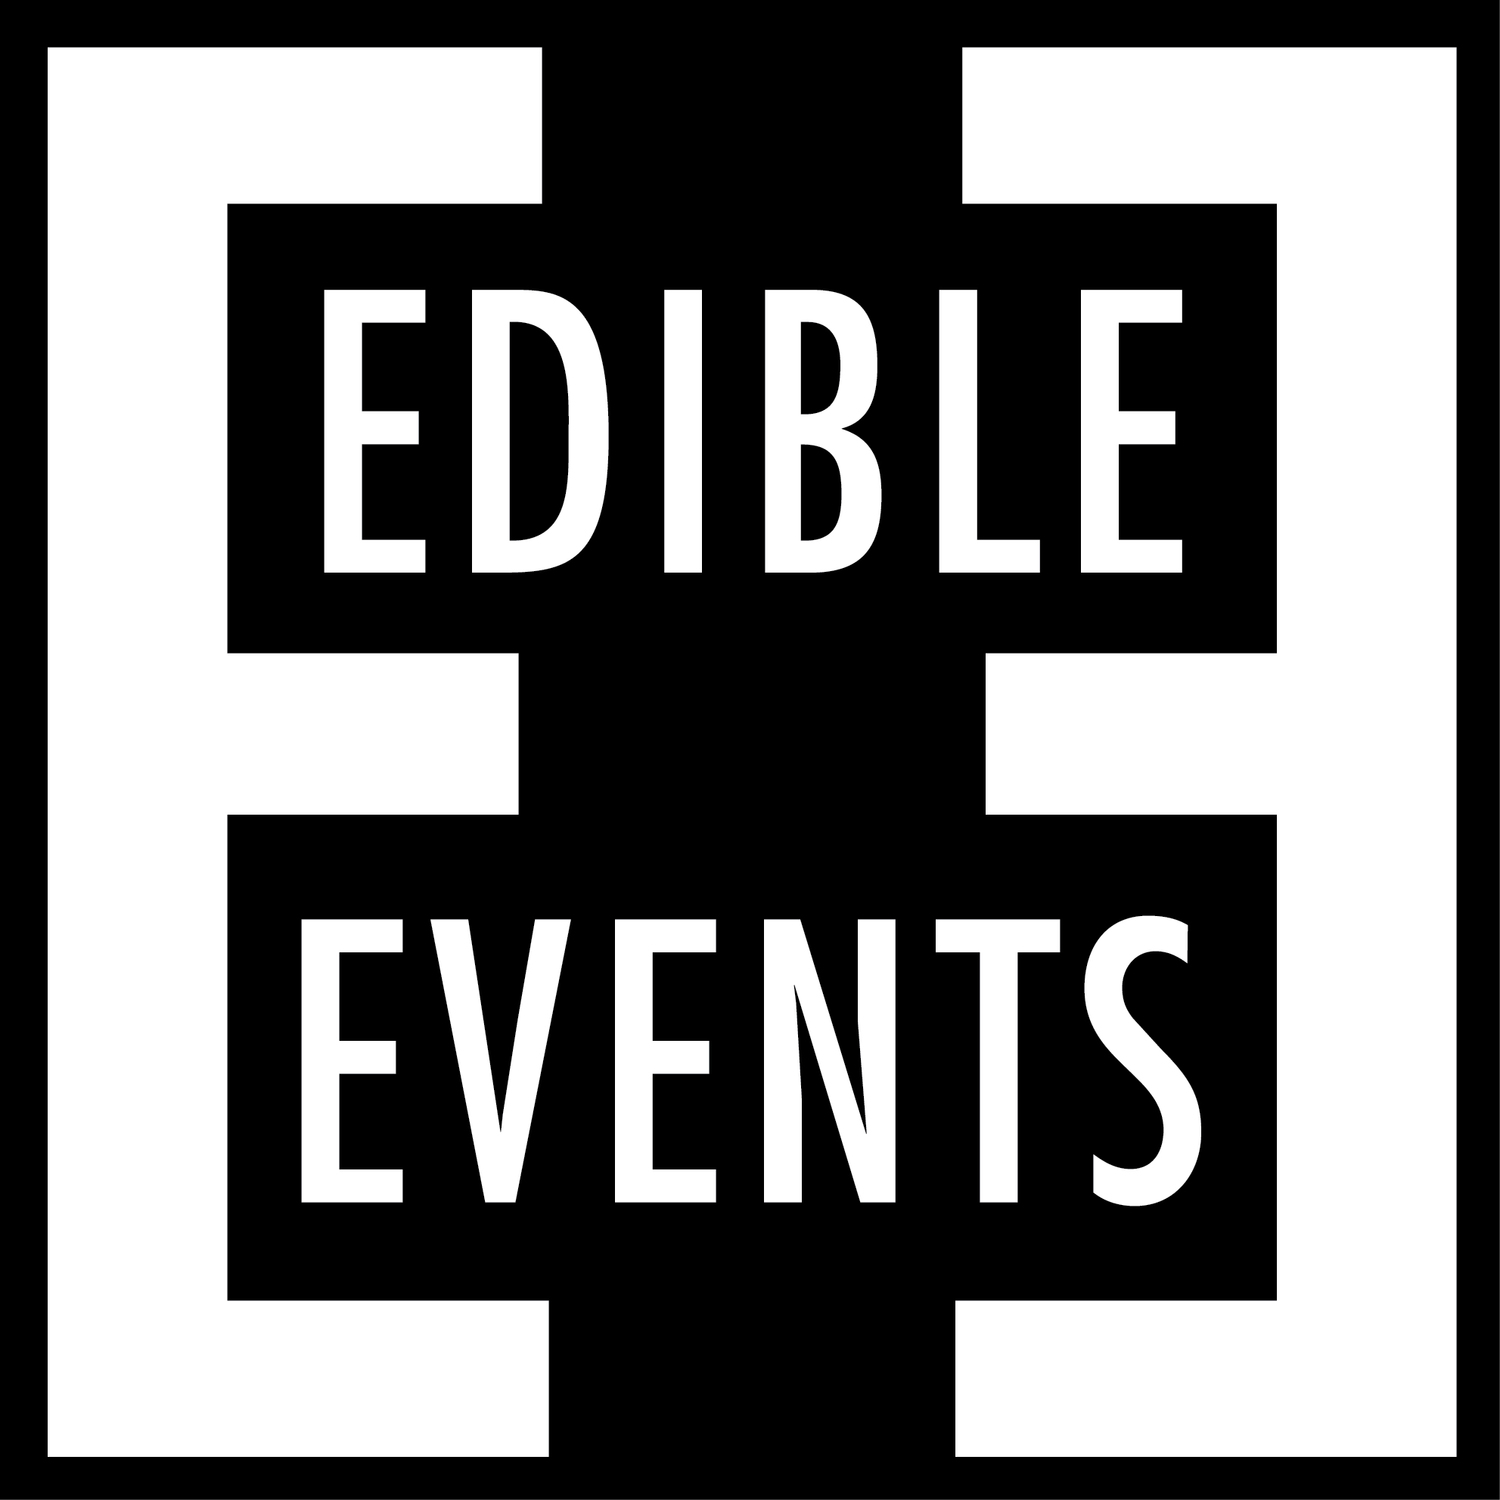 Edible Events Co.